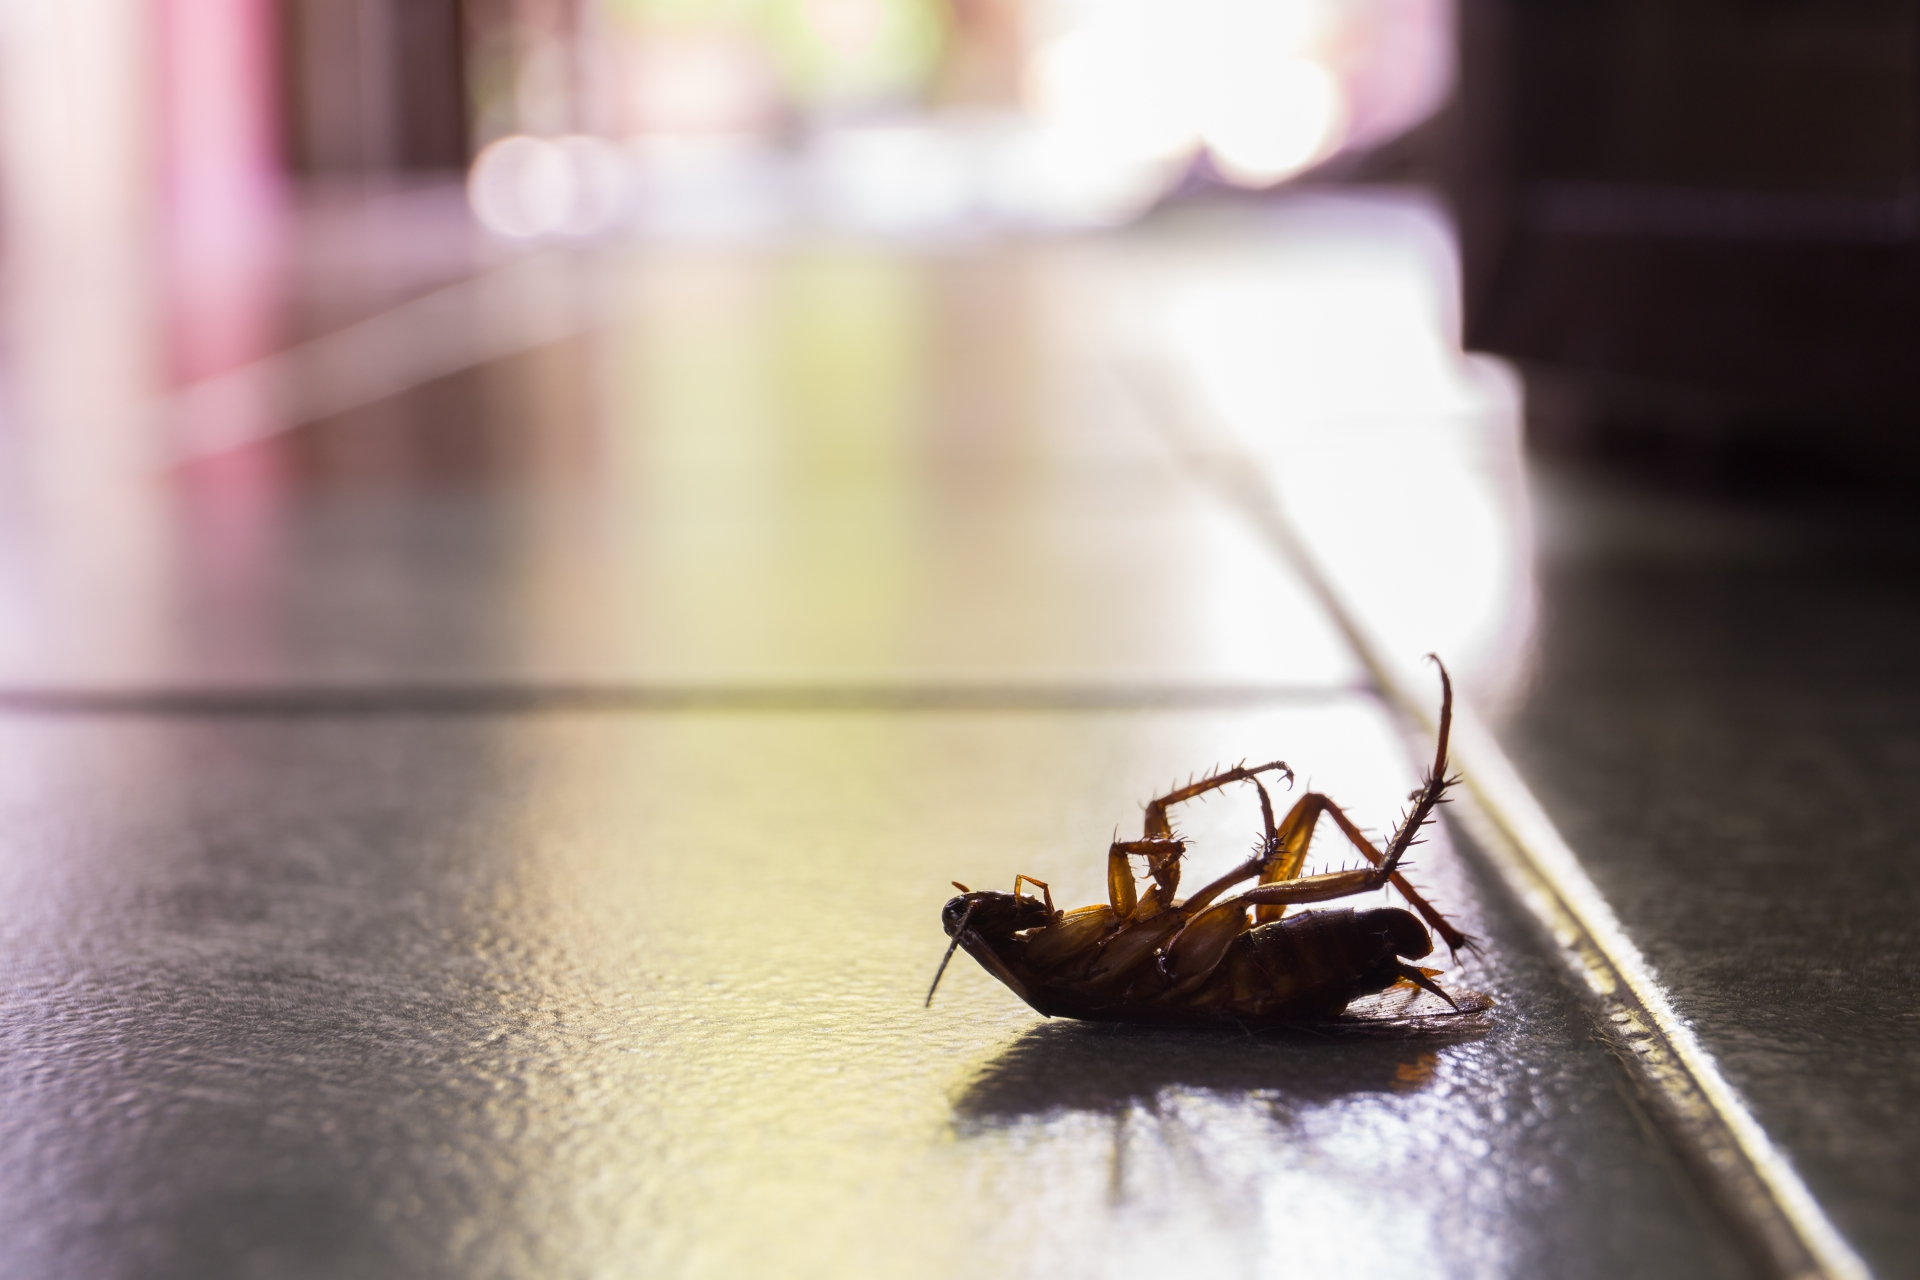 Cockroach Control, Pest Control in Brompton, SW3. Call Now 020 8166 9746